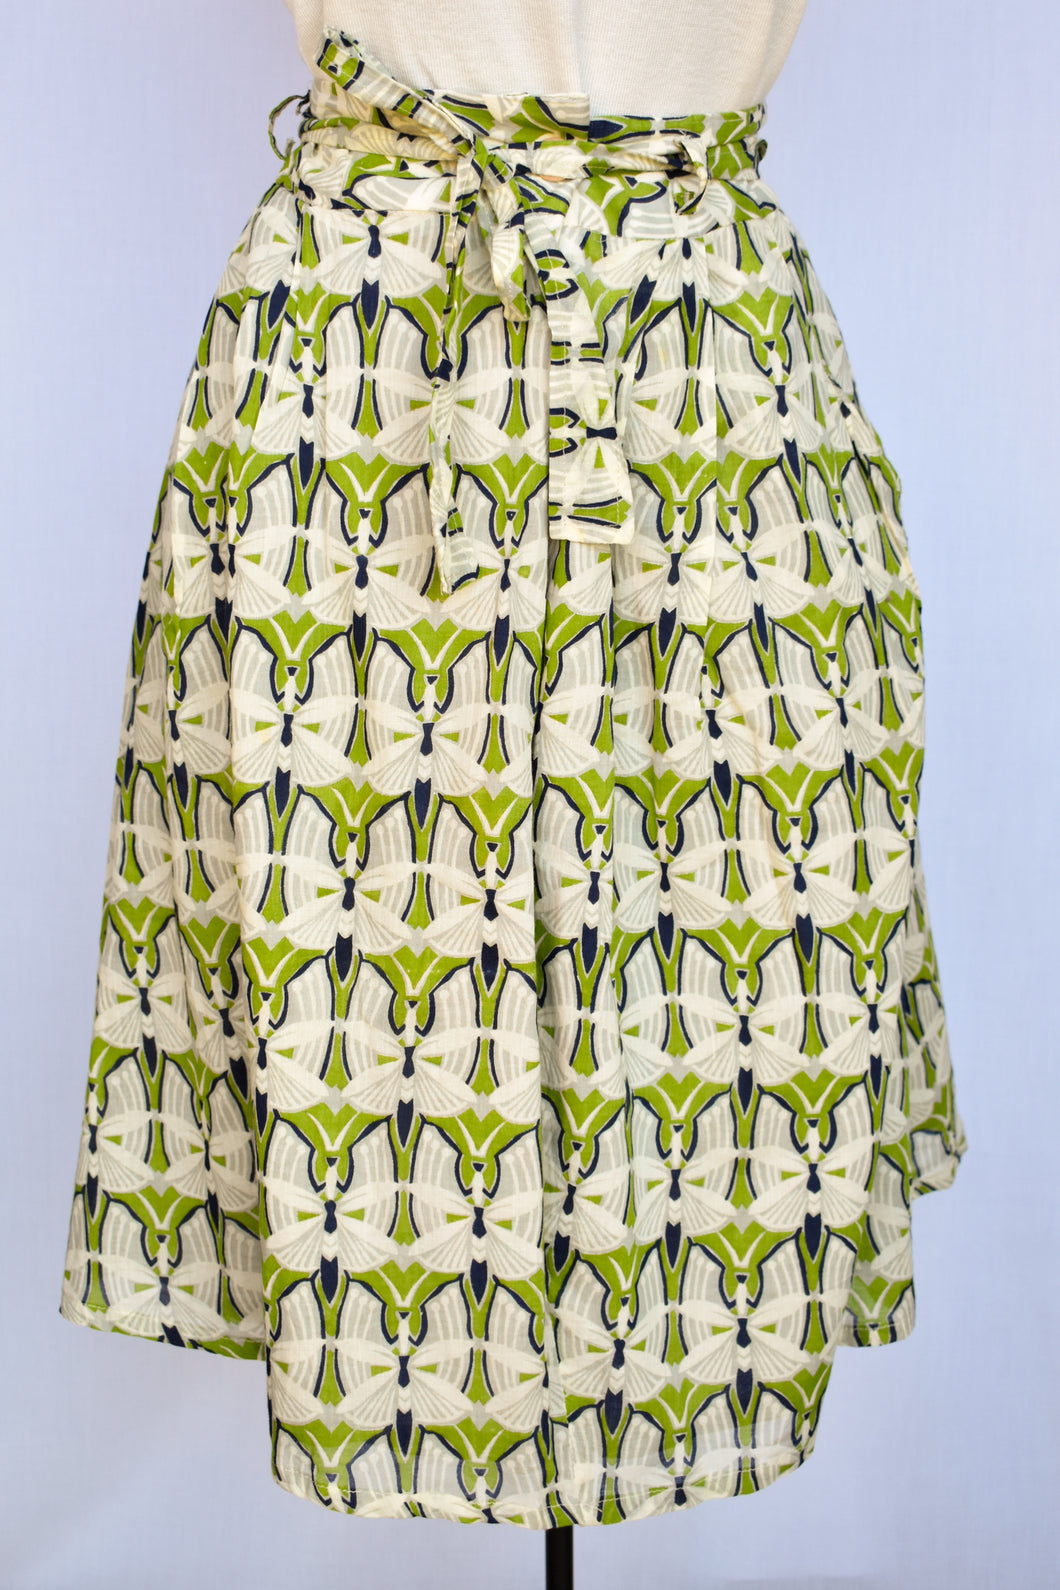 RJC by Kingan Jones patterned skirt, size 12